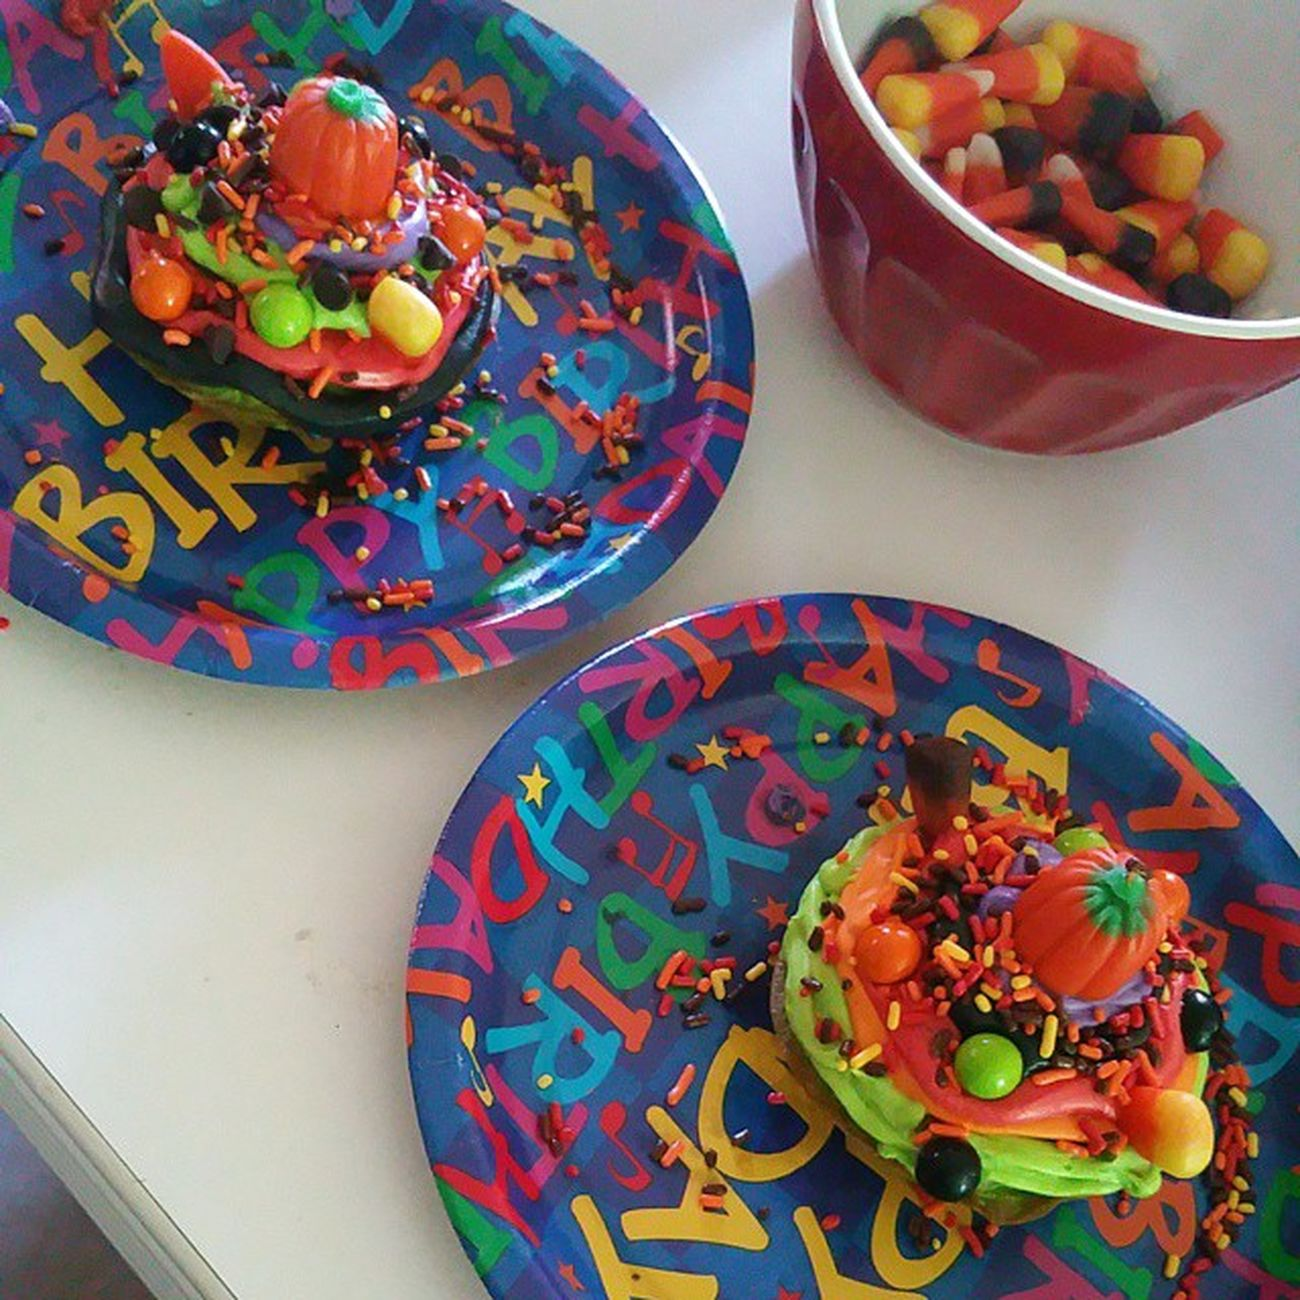 I made these special cakes for the boys to eat. They loved the way I decorated them. Halloween Lovemyboys Decoratingforhalloween Son nephew